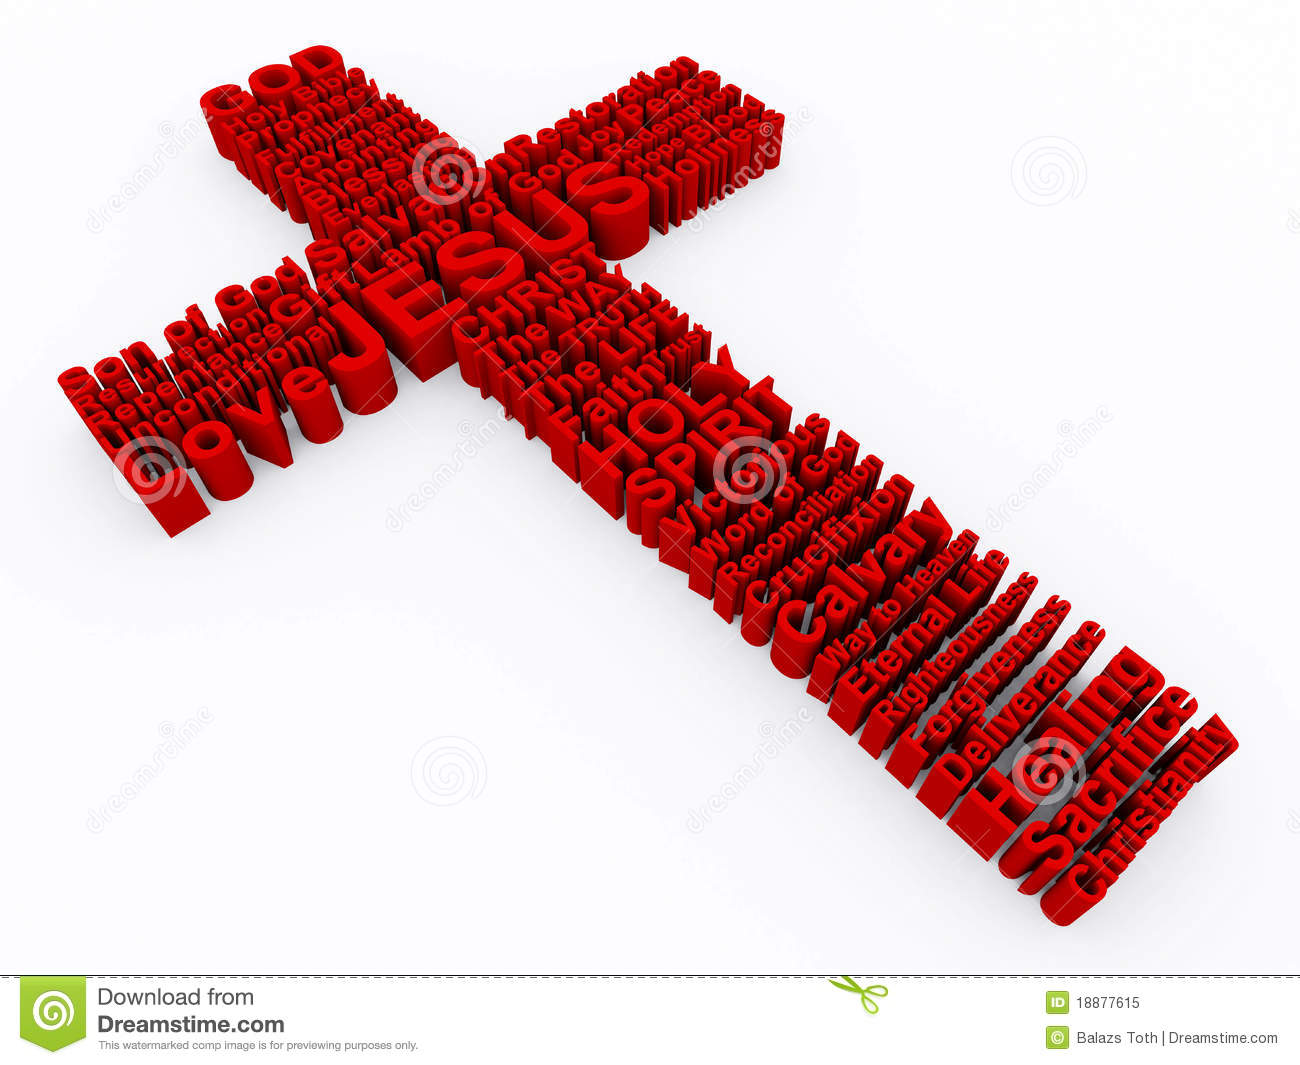 3D Cross made up of various words that describe Christianity and Jesus ...